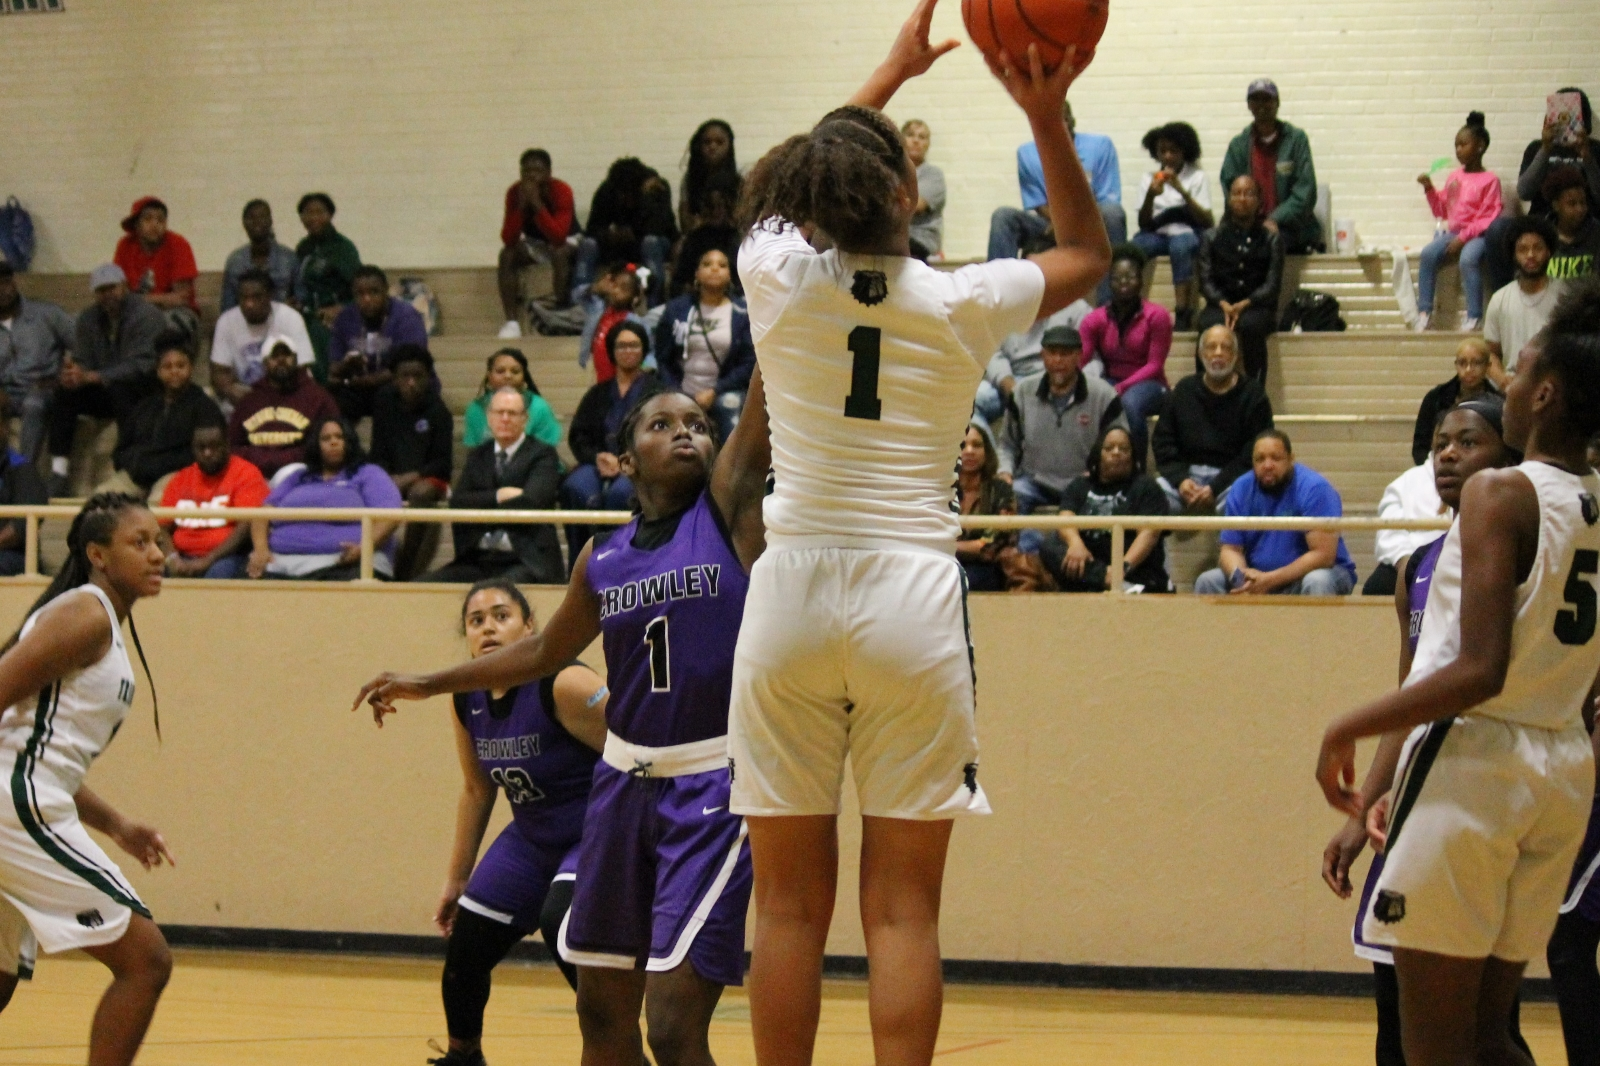 Last second shot doesn't fall for Crowley, Lady Bulldogs come away with a one point victory 54-53. Pictures and schedules